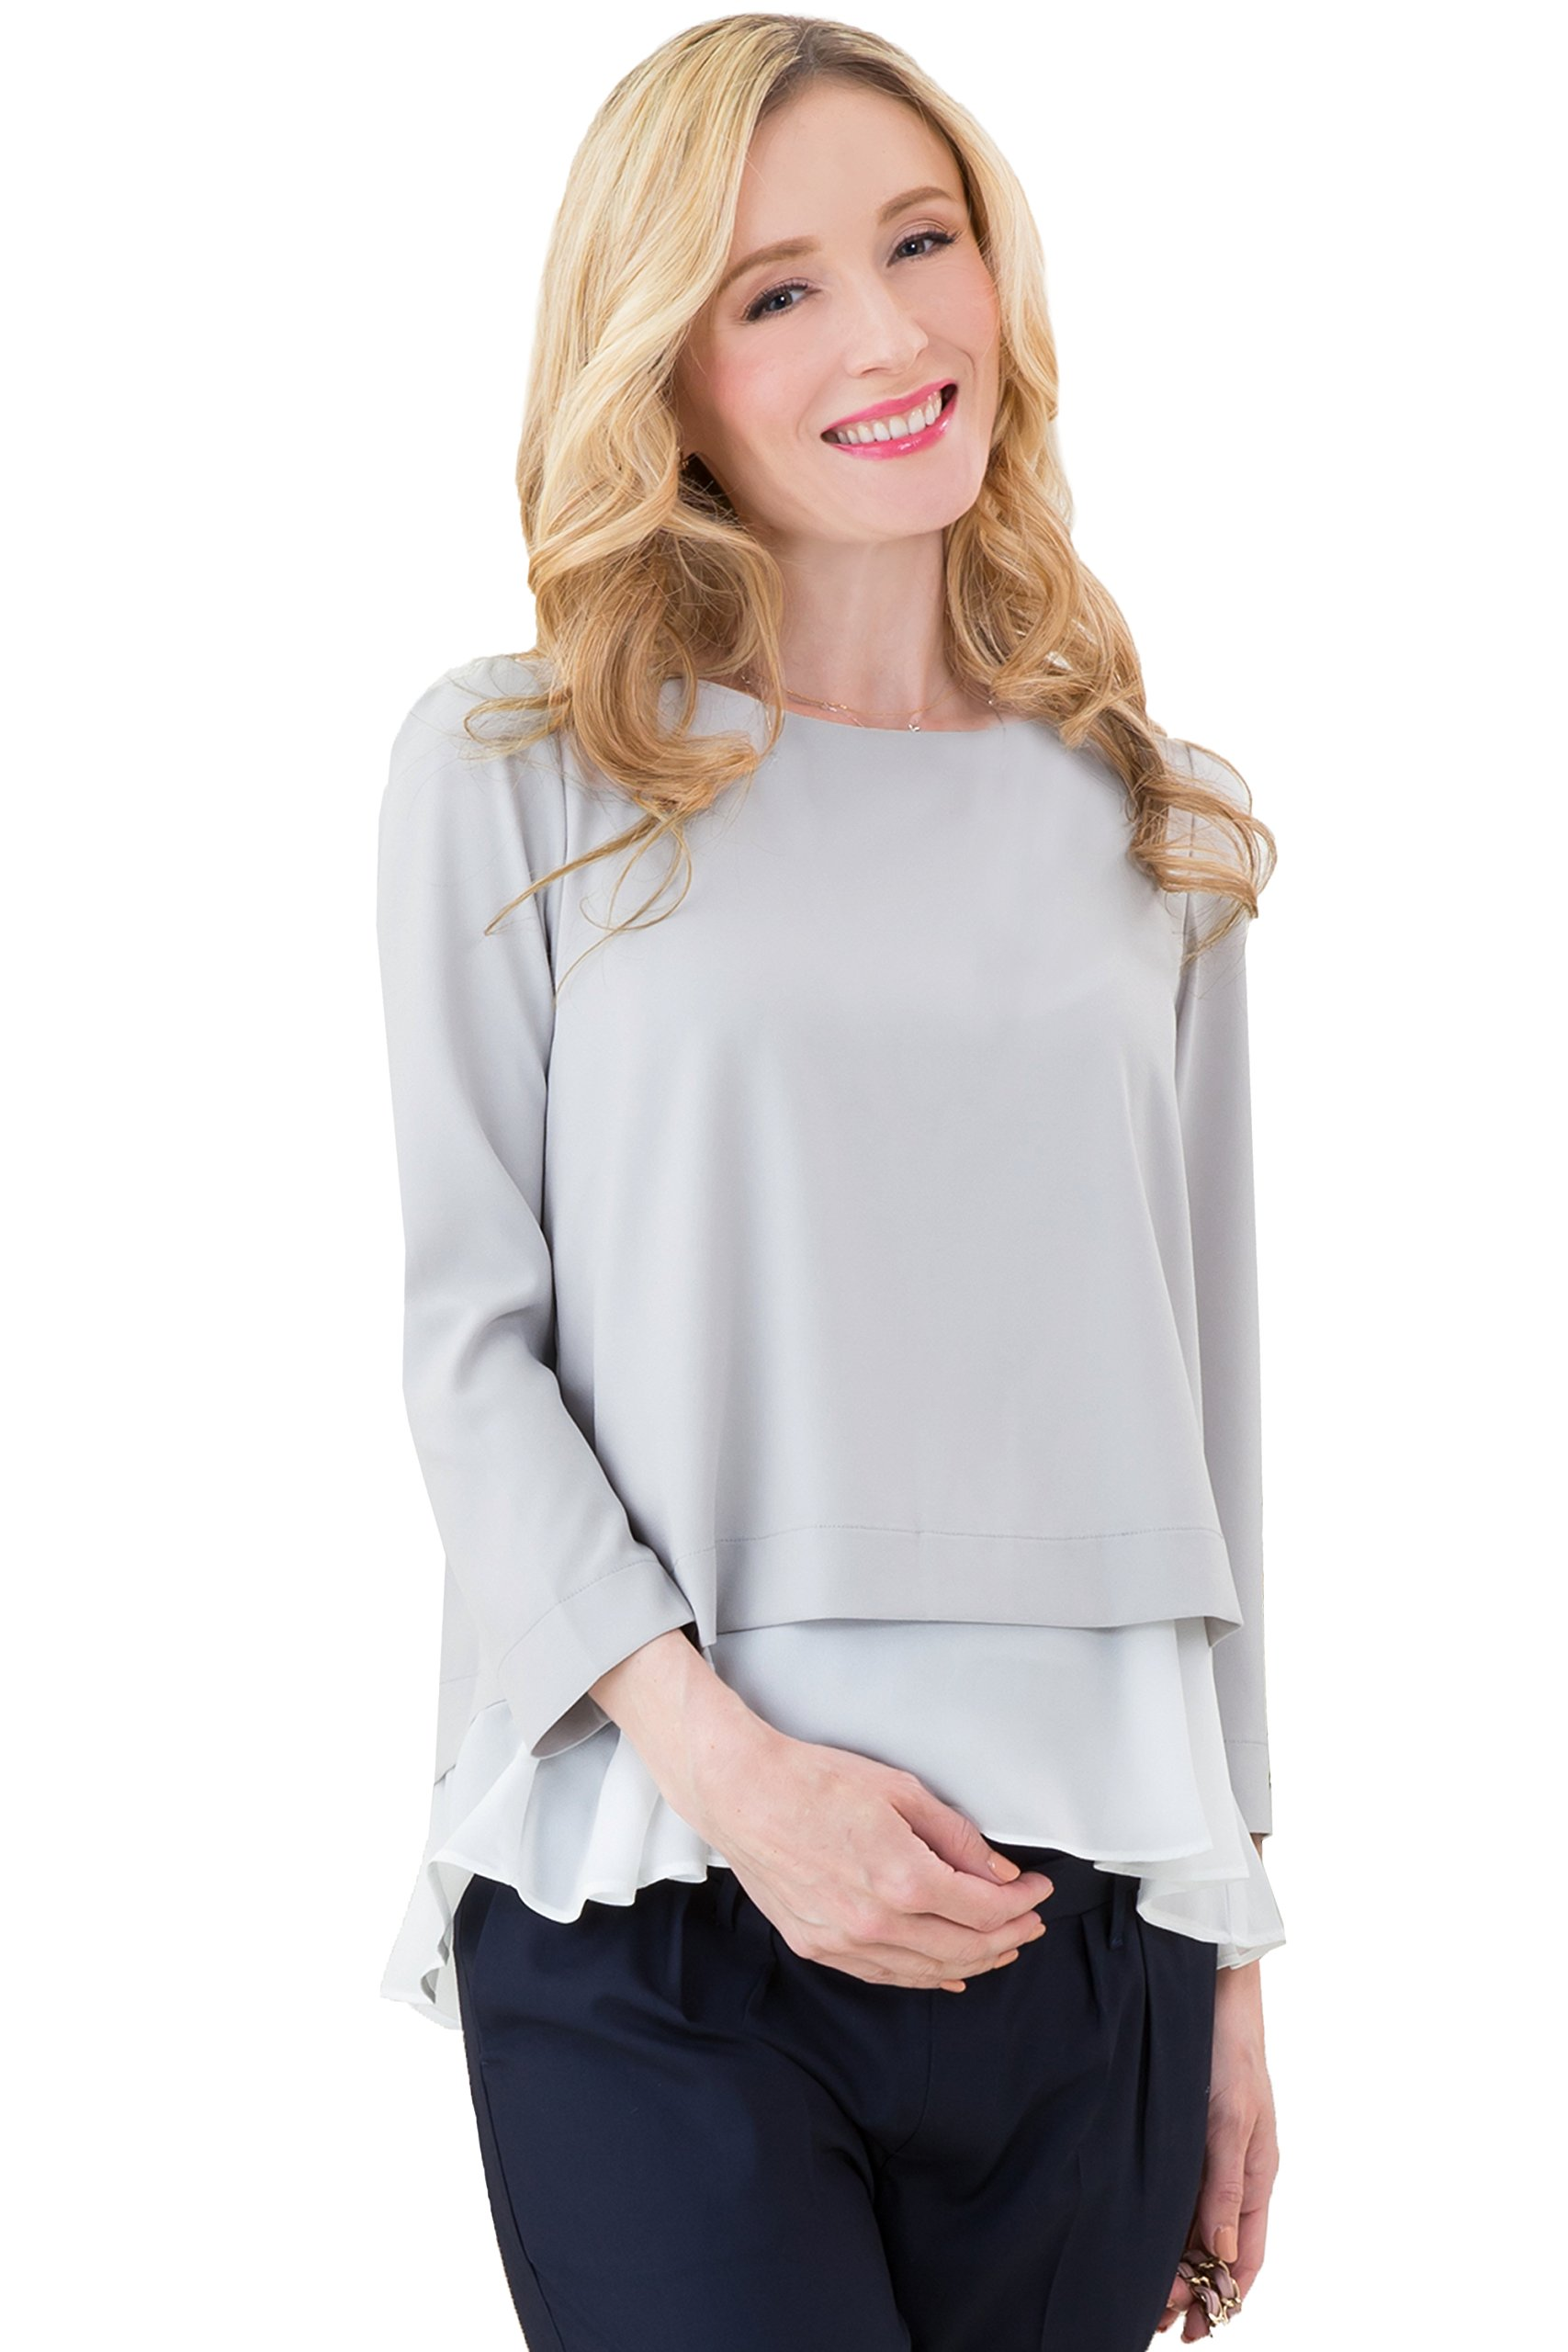 Sweet Mommy Maternity and Nursing Layered Georgette Top Blouse with Chiffon Hem GrayWhite L